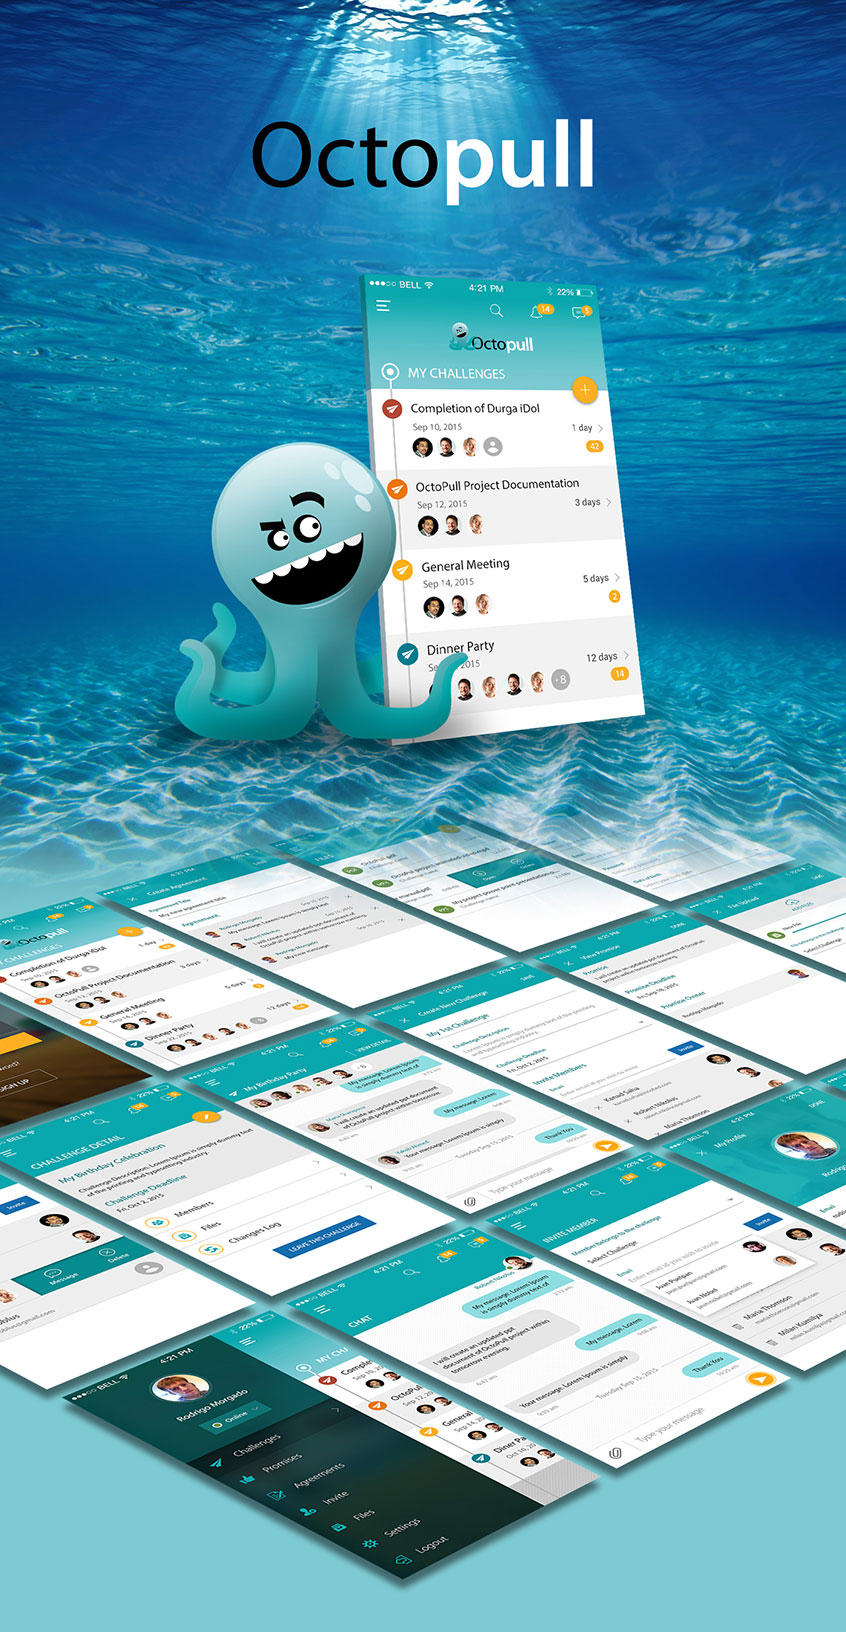 OctoPull-on-Behance-v1.2A-small